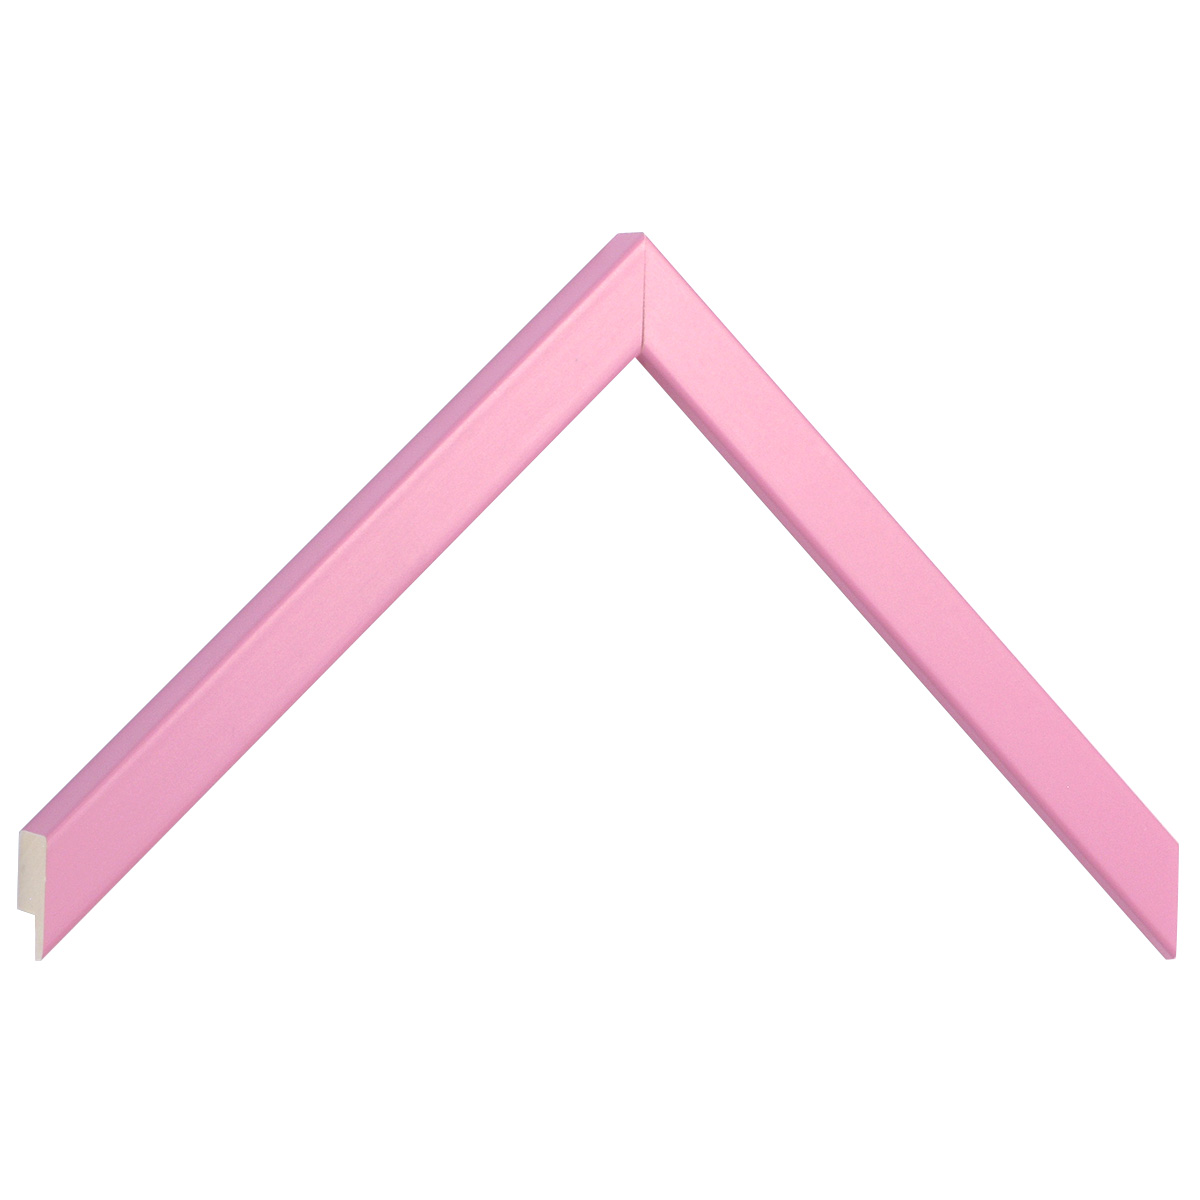 Moulding ayous width 15mm height 14 - pink